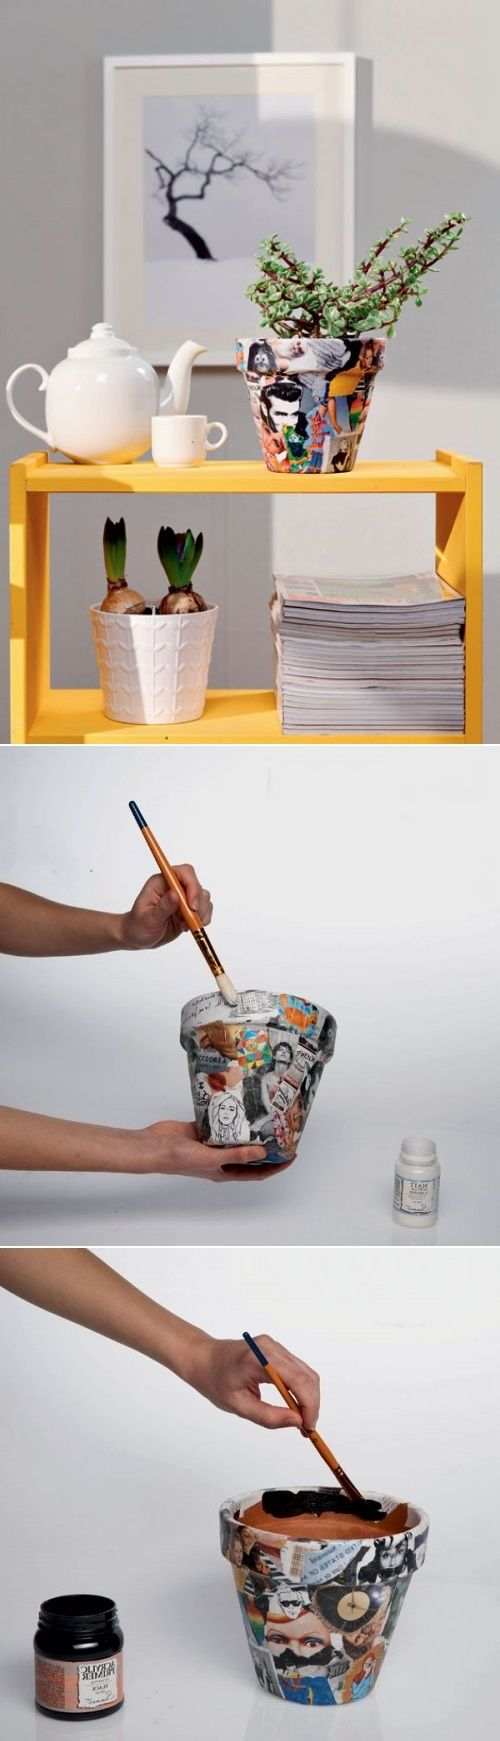 DIY Planter With Paper